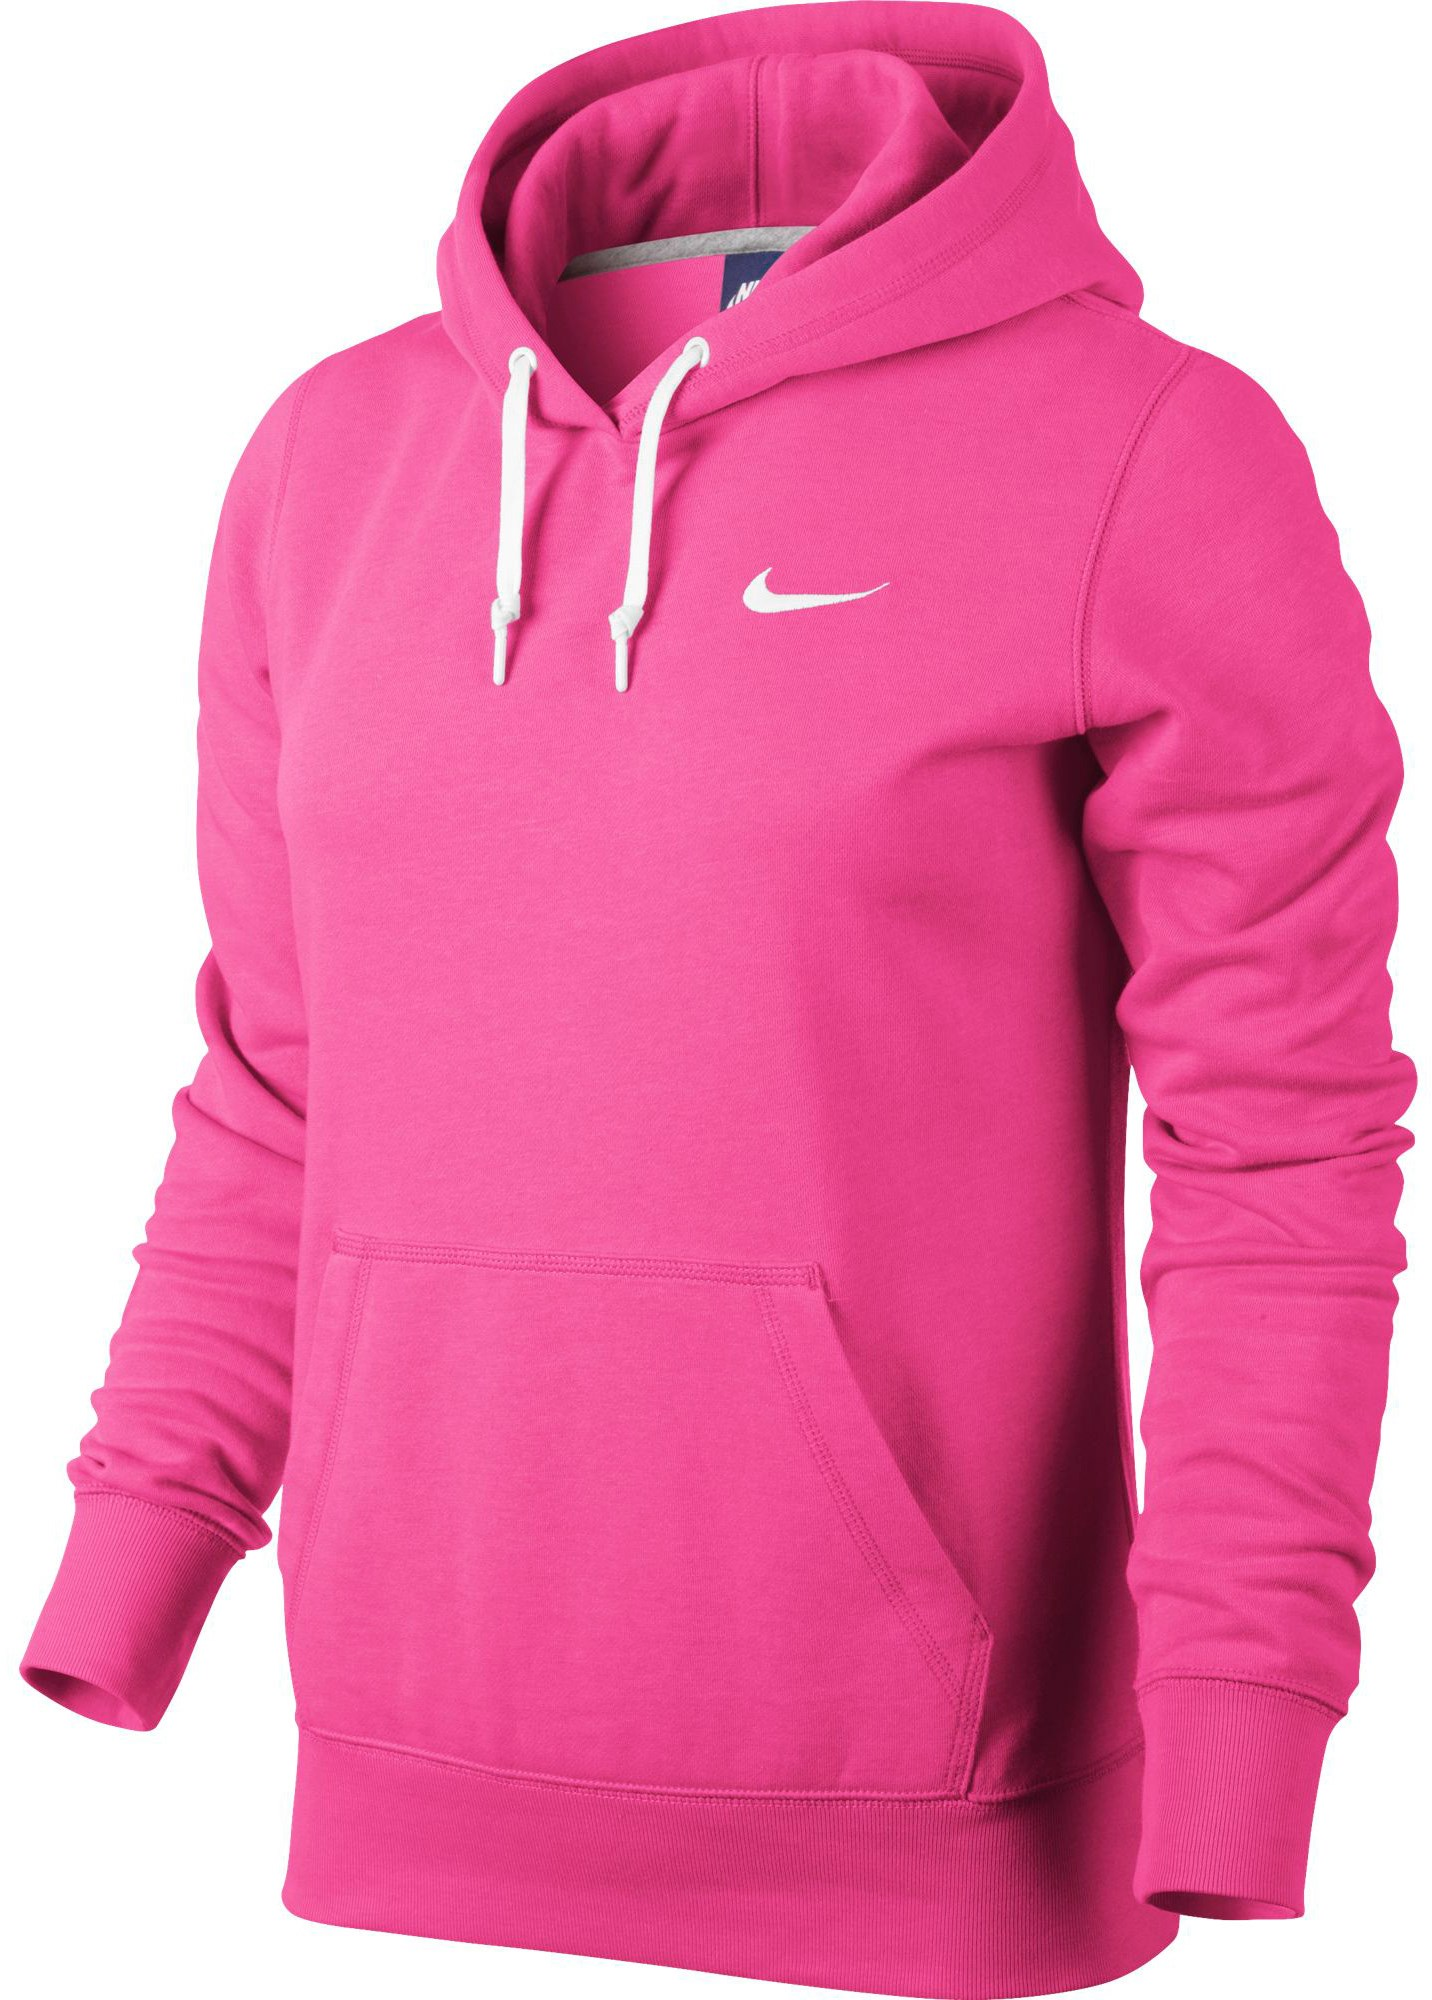 Pink Nike Hoodie Men Photo Album - Reikian